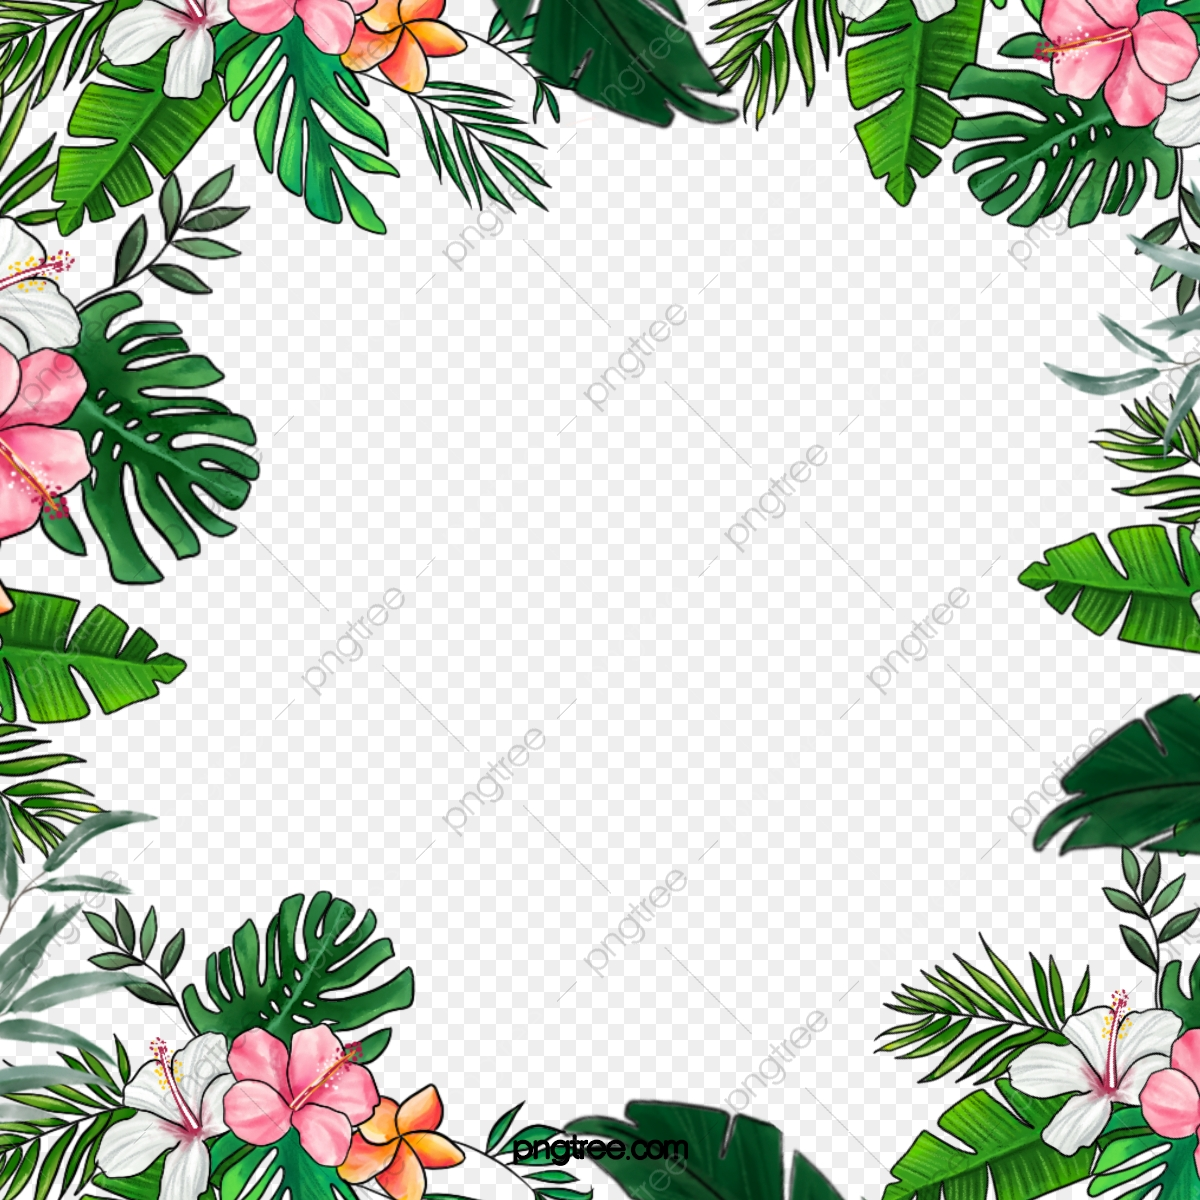 Hand Painted Tropical Leaves Border Hand Painted Tropic Leaf Png Transparent Clipart Image And Psd File For Free Download Border leaf tropical leaf border tropical border tropical leaf decoration ornament decorative ornate frame decor classic vintage template elegant element ornamental retro elegance classical artistic floral shape symmetric deco flower symmetrical seamless nature symbol background borders leaves swirl. https pngtree com freepng hand painted tropical leaves border 5365022 html